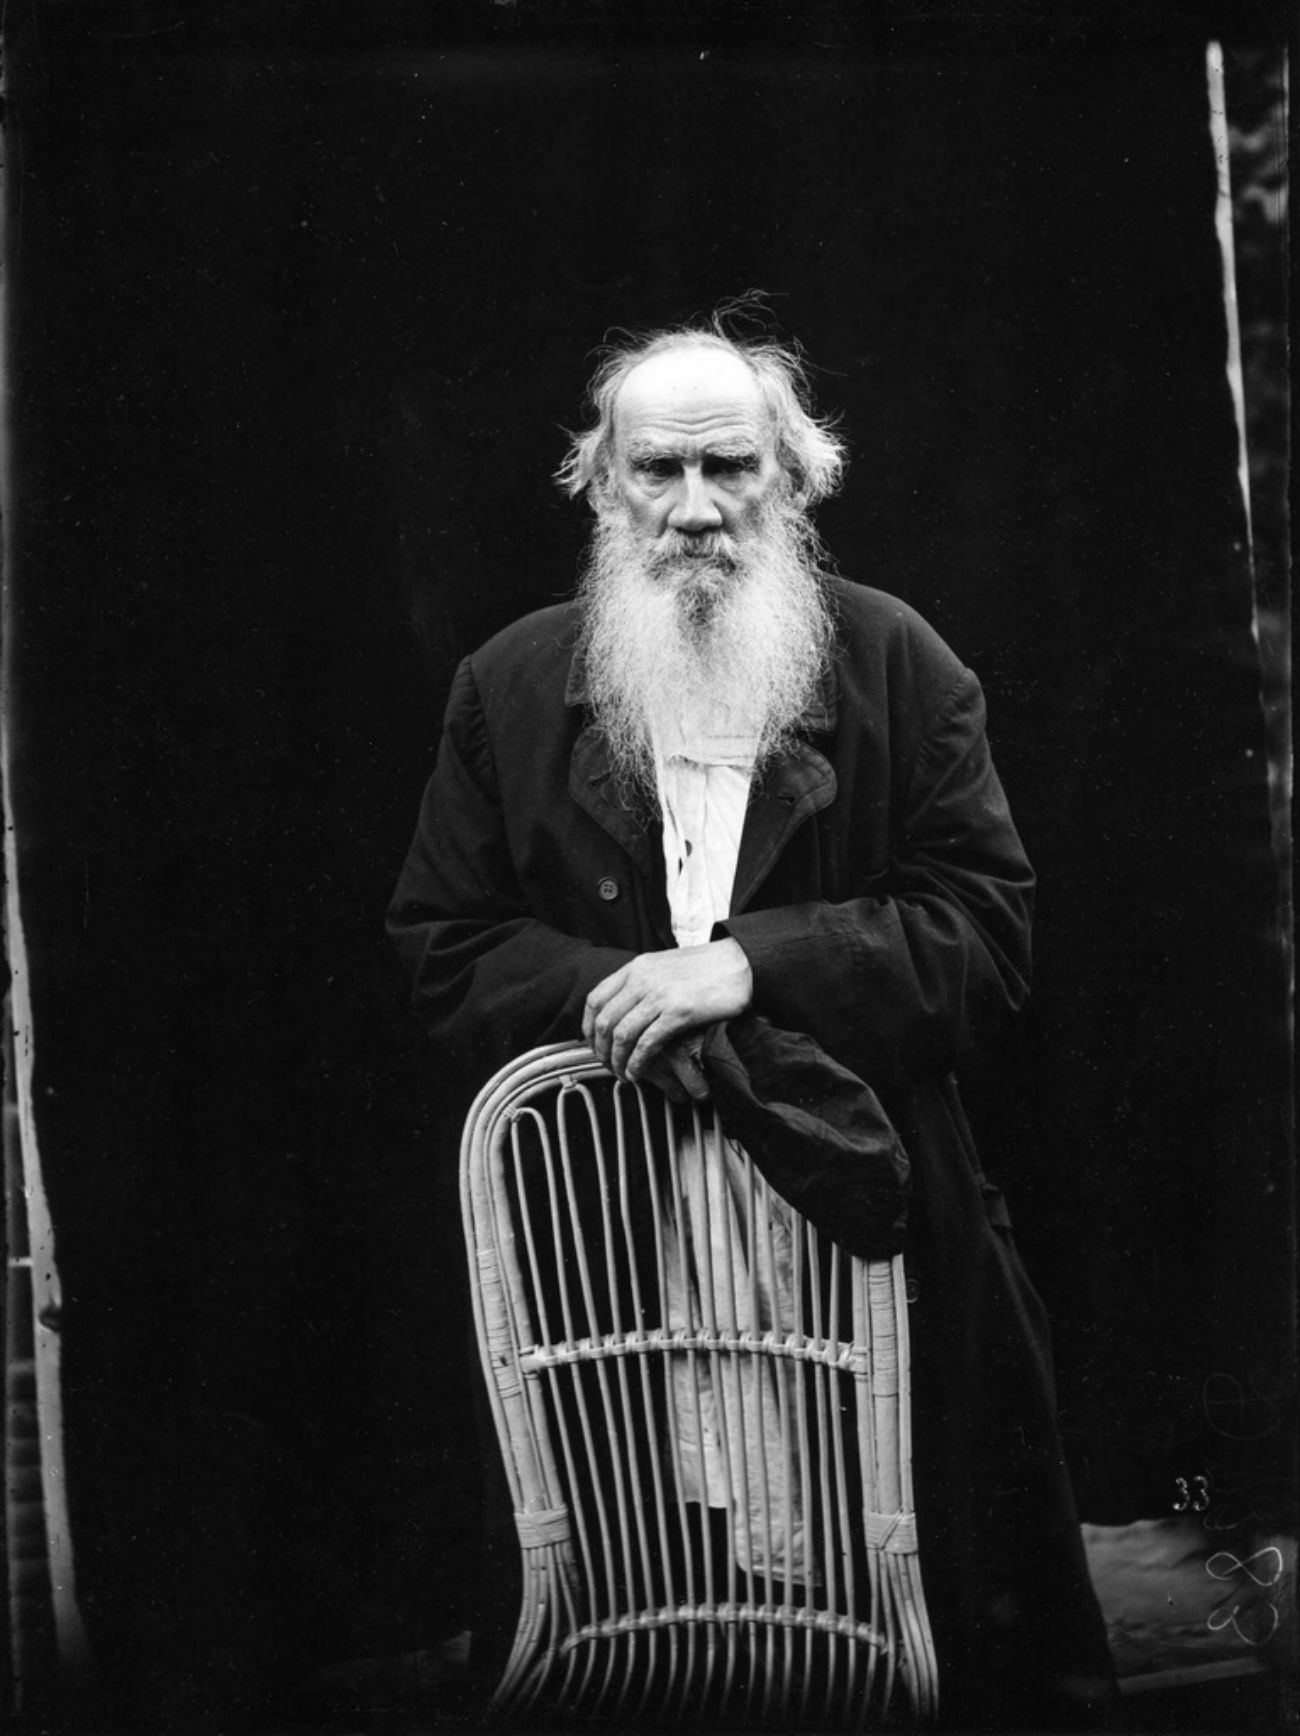 Bulla found employment as a courier at a photo company and quickly learnt how to take pictures himself // Leo Tolstoy, 1902.